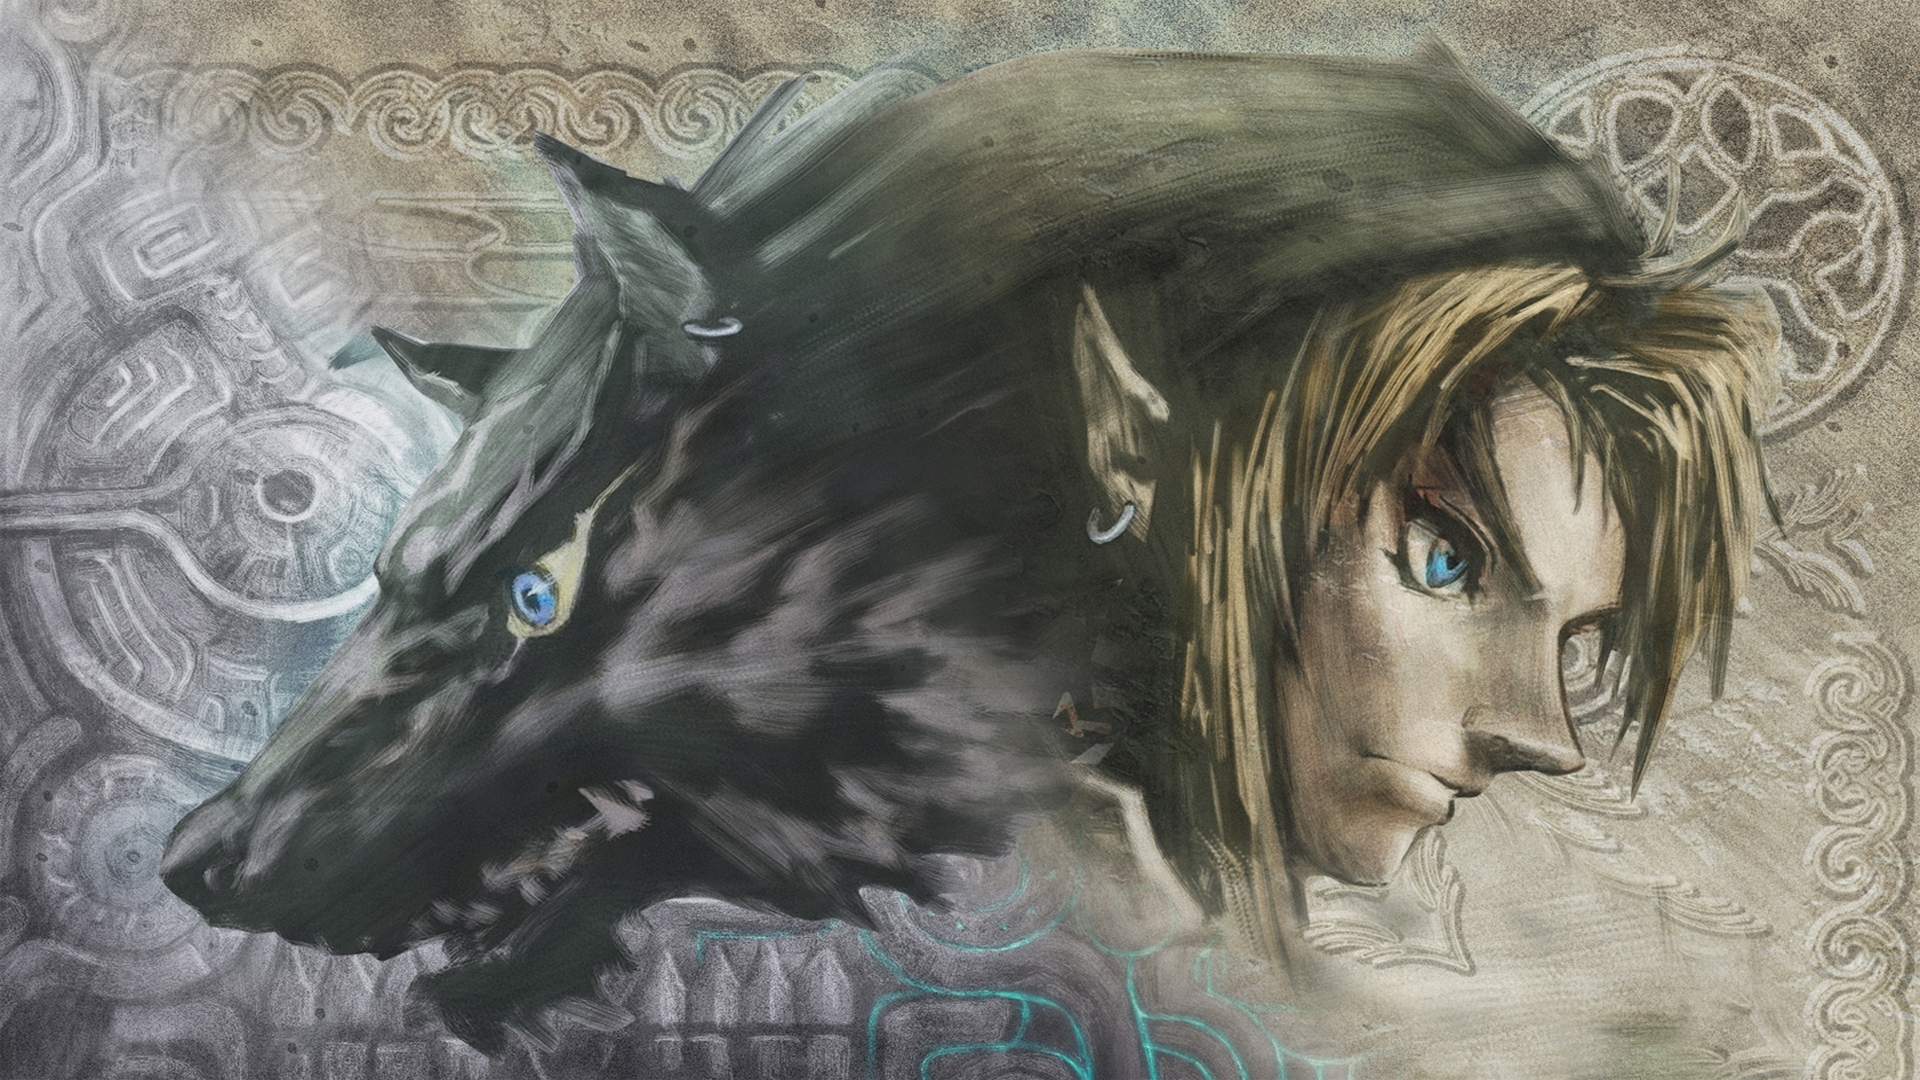 amiibo wolf link to possibly unlock bonus content for the legend of